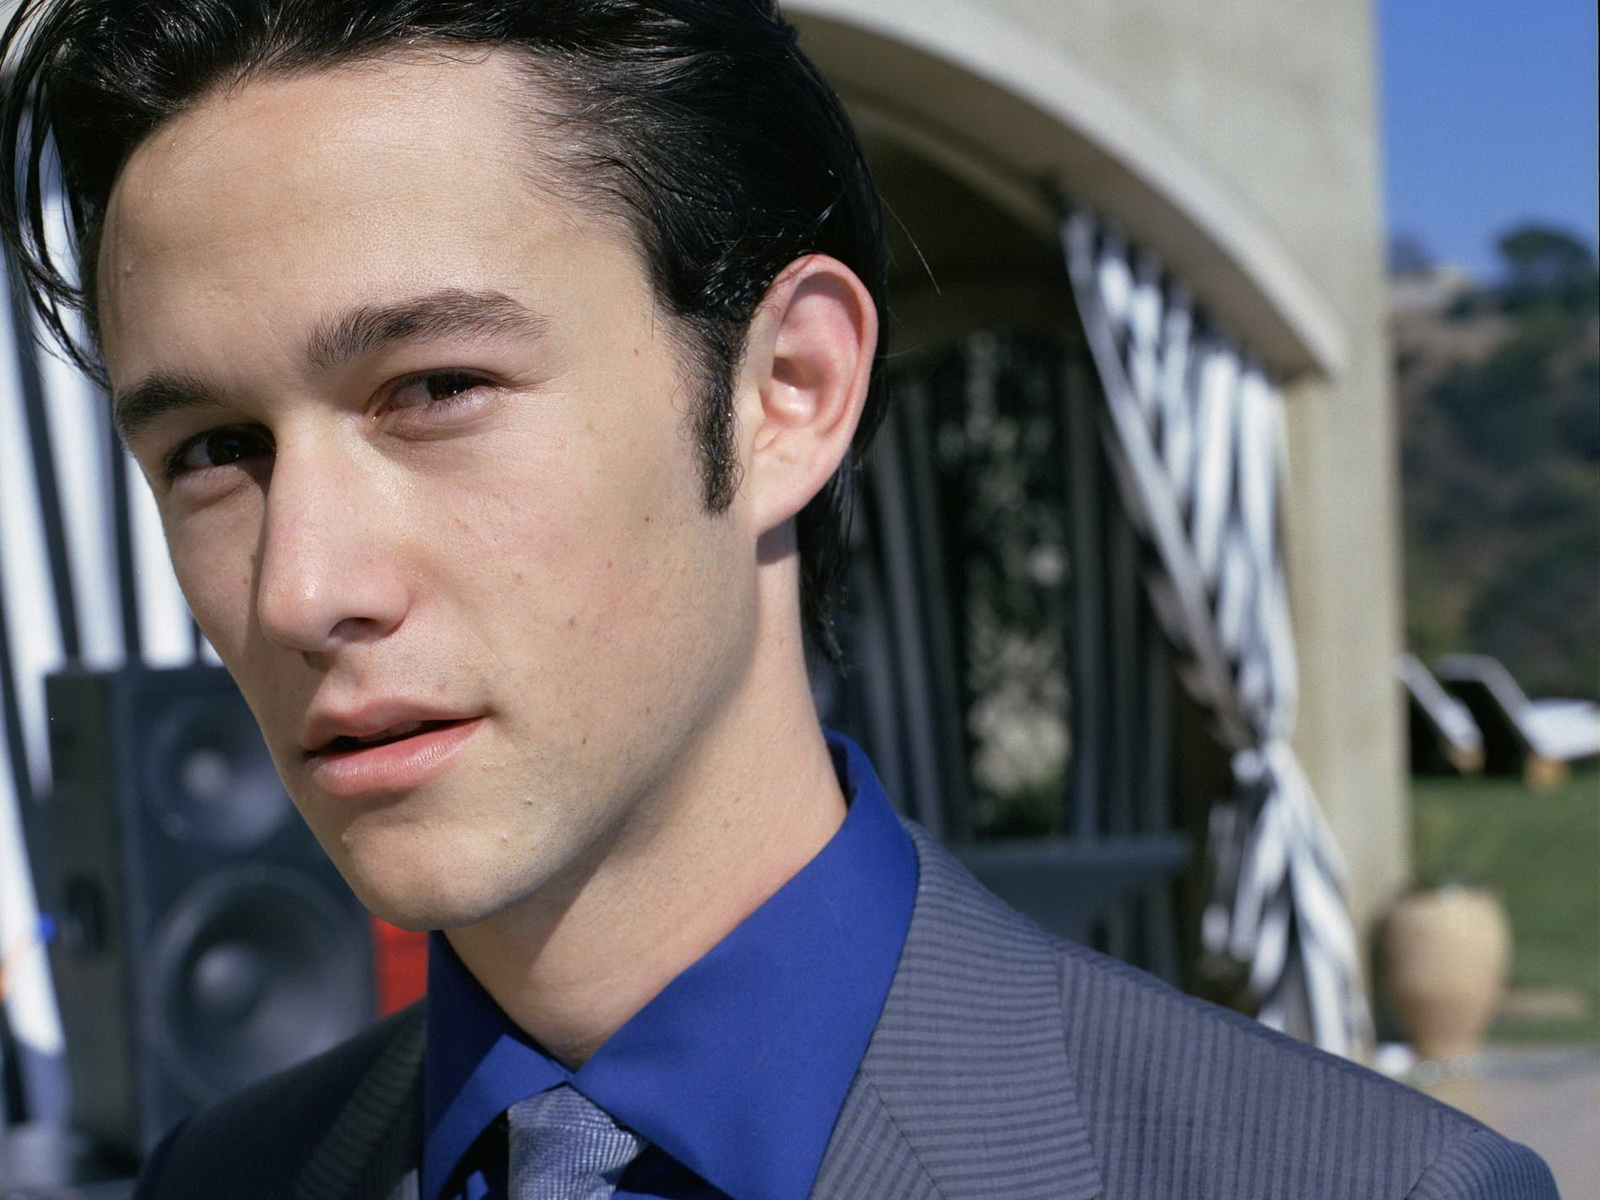 Joseph Gordon-Levitt photo 29 of 212 pics, wallpaper ... джозеф гордон левитт